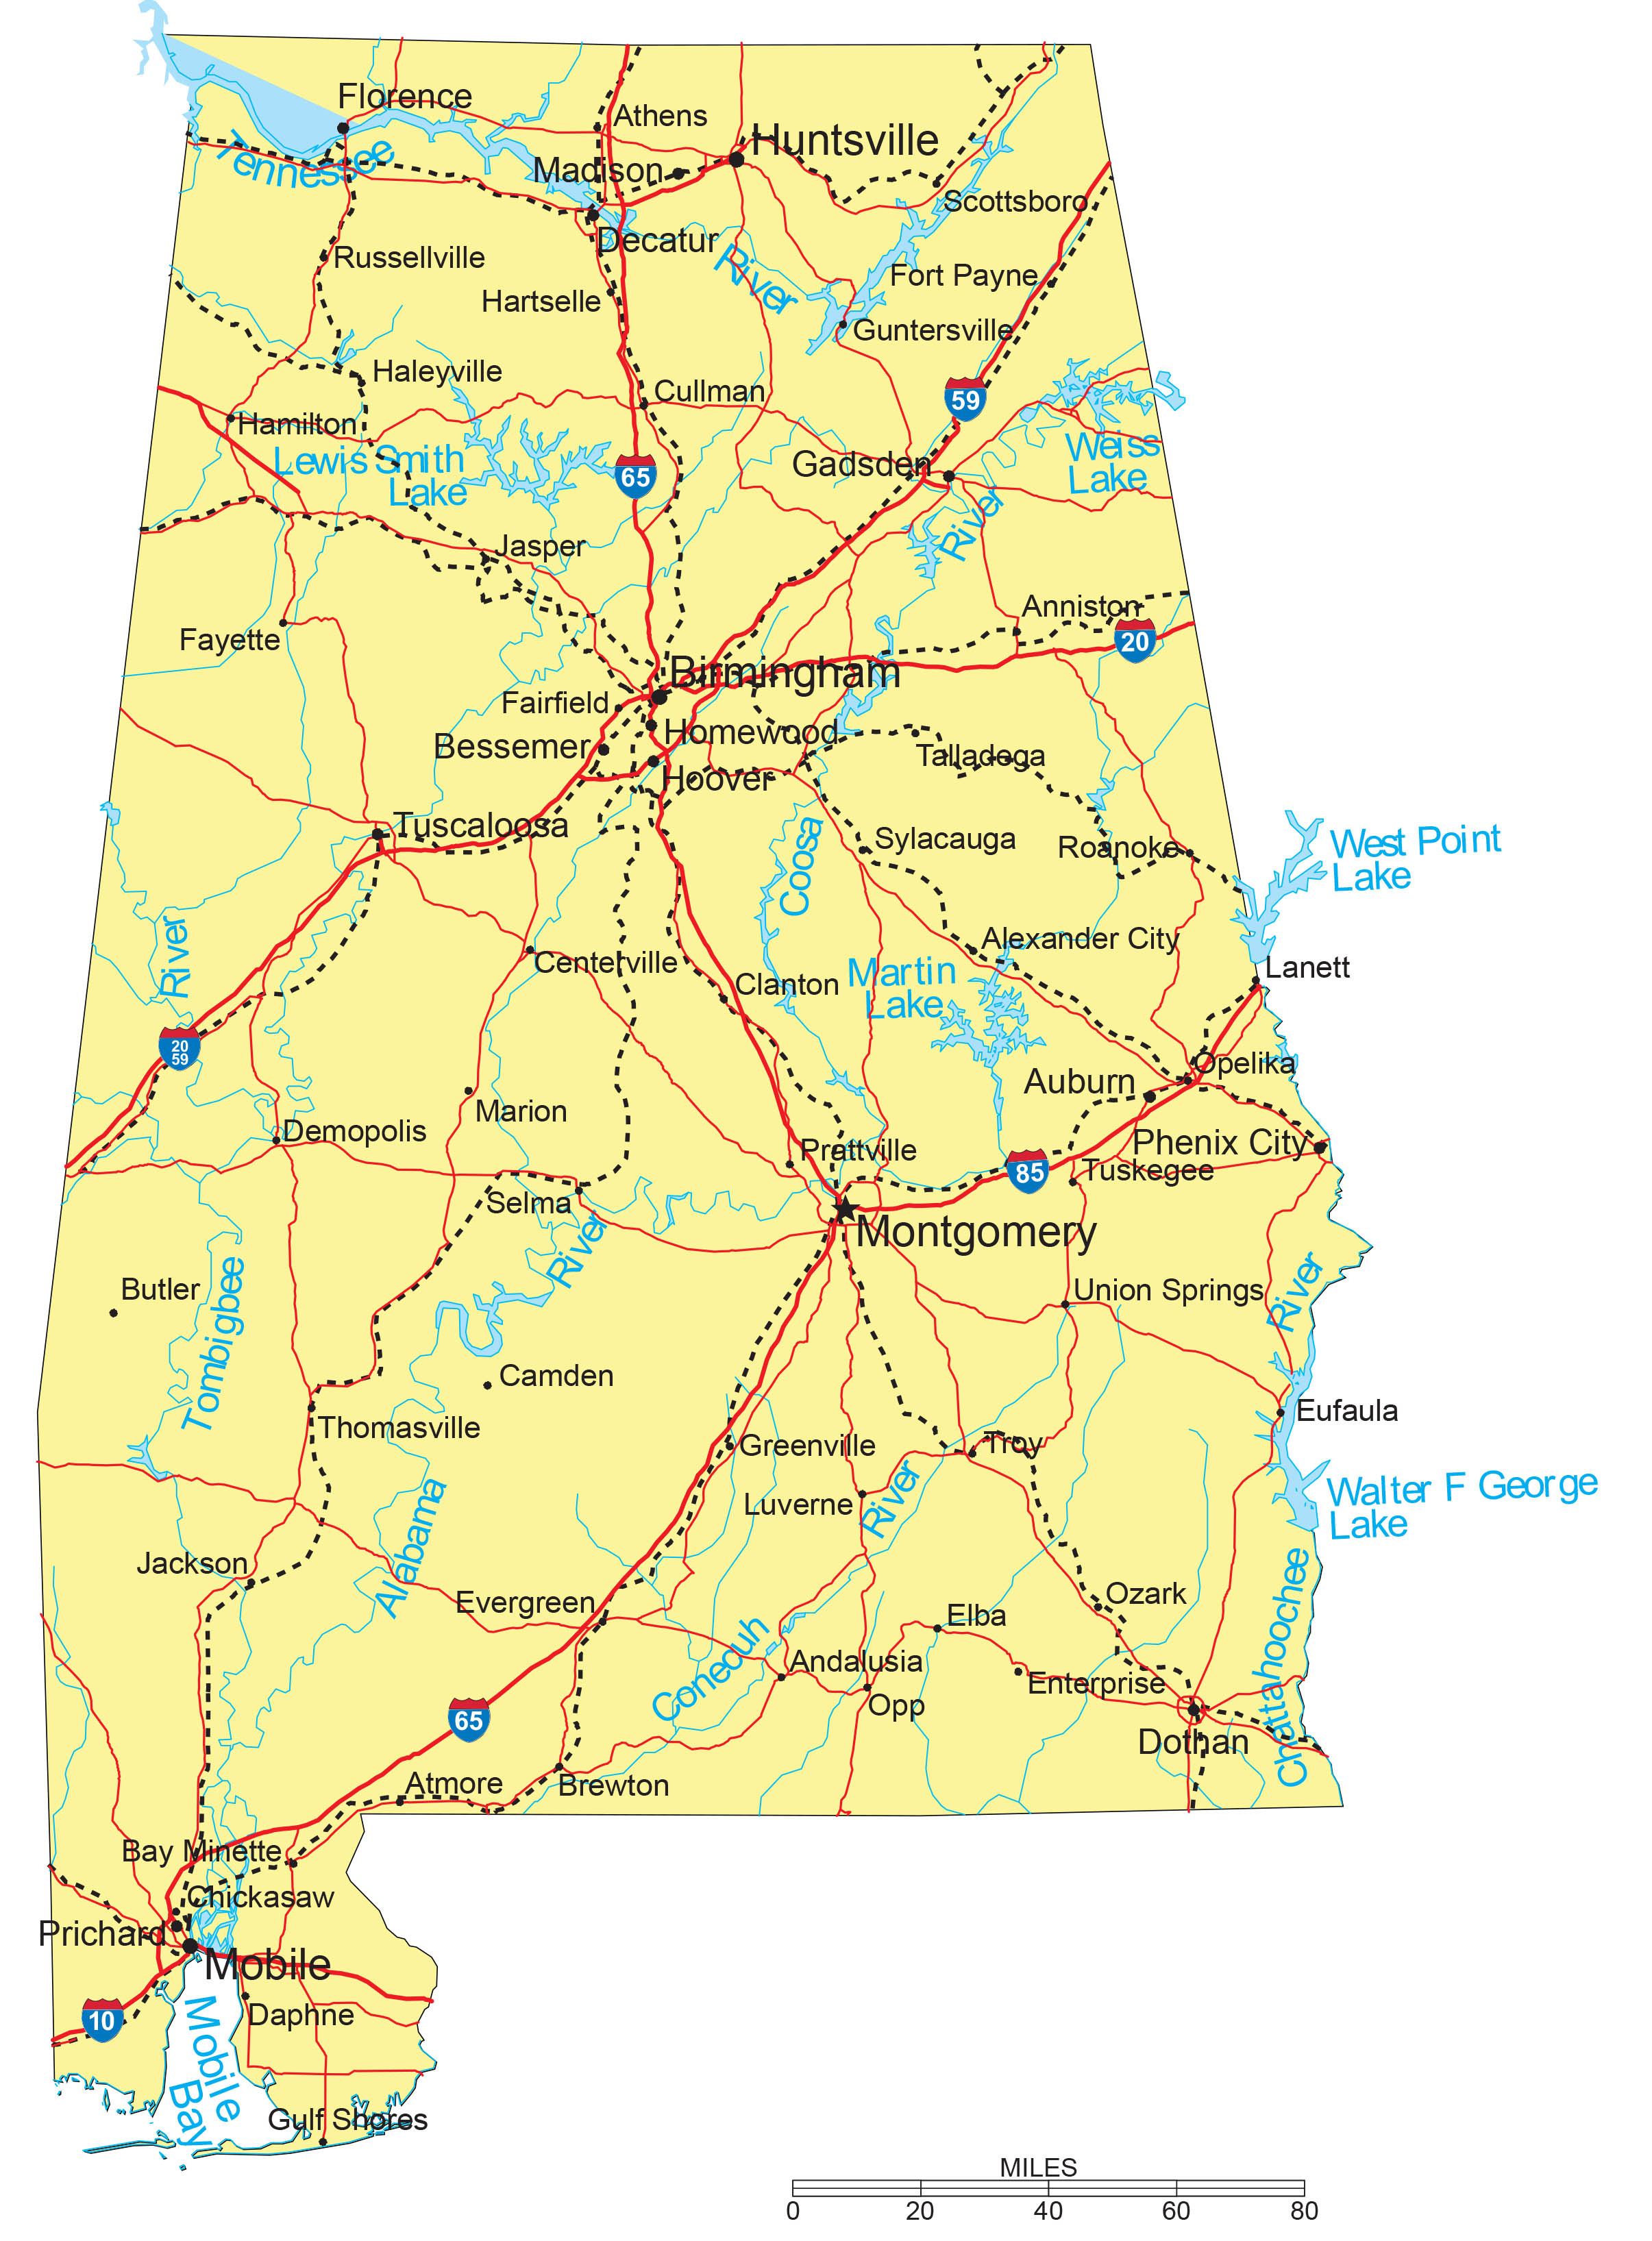 Detailed Alabama State Map With Capitals Major Cities Interstates Roads Railroads